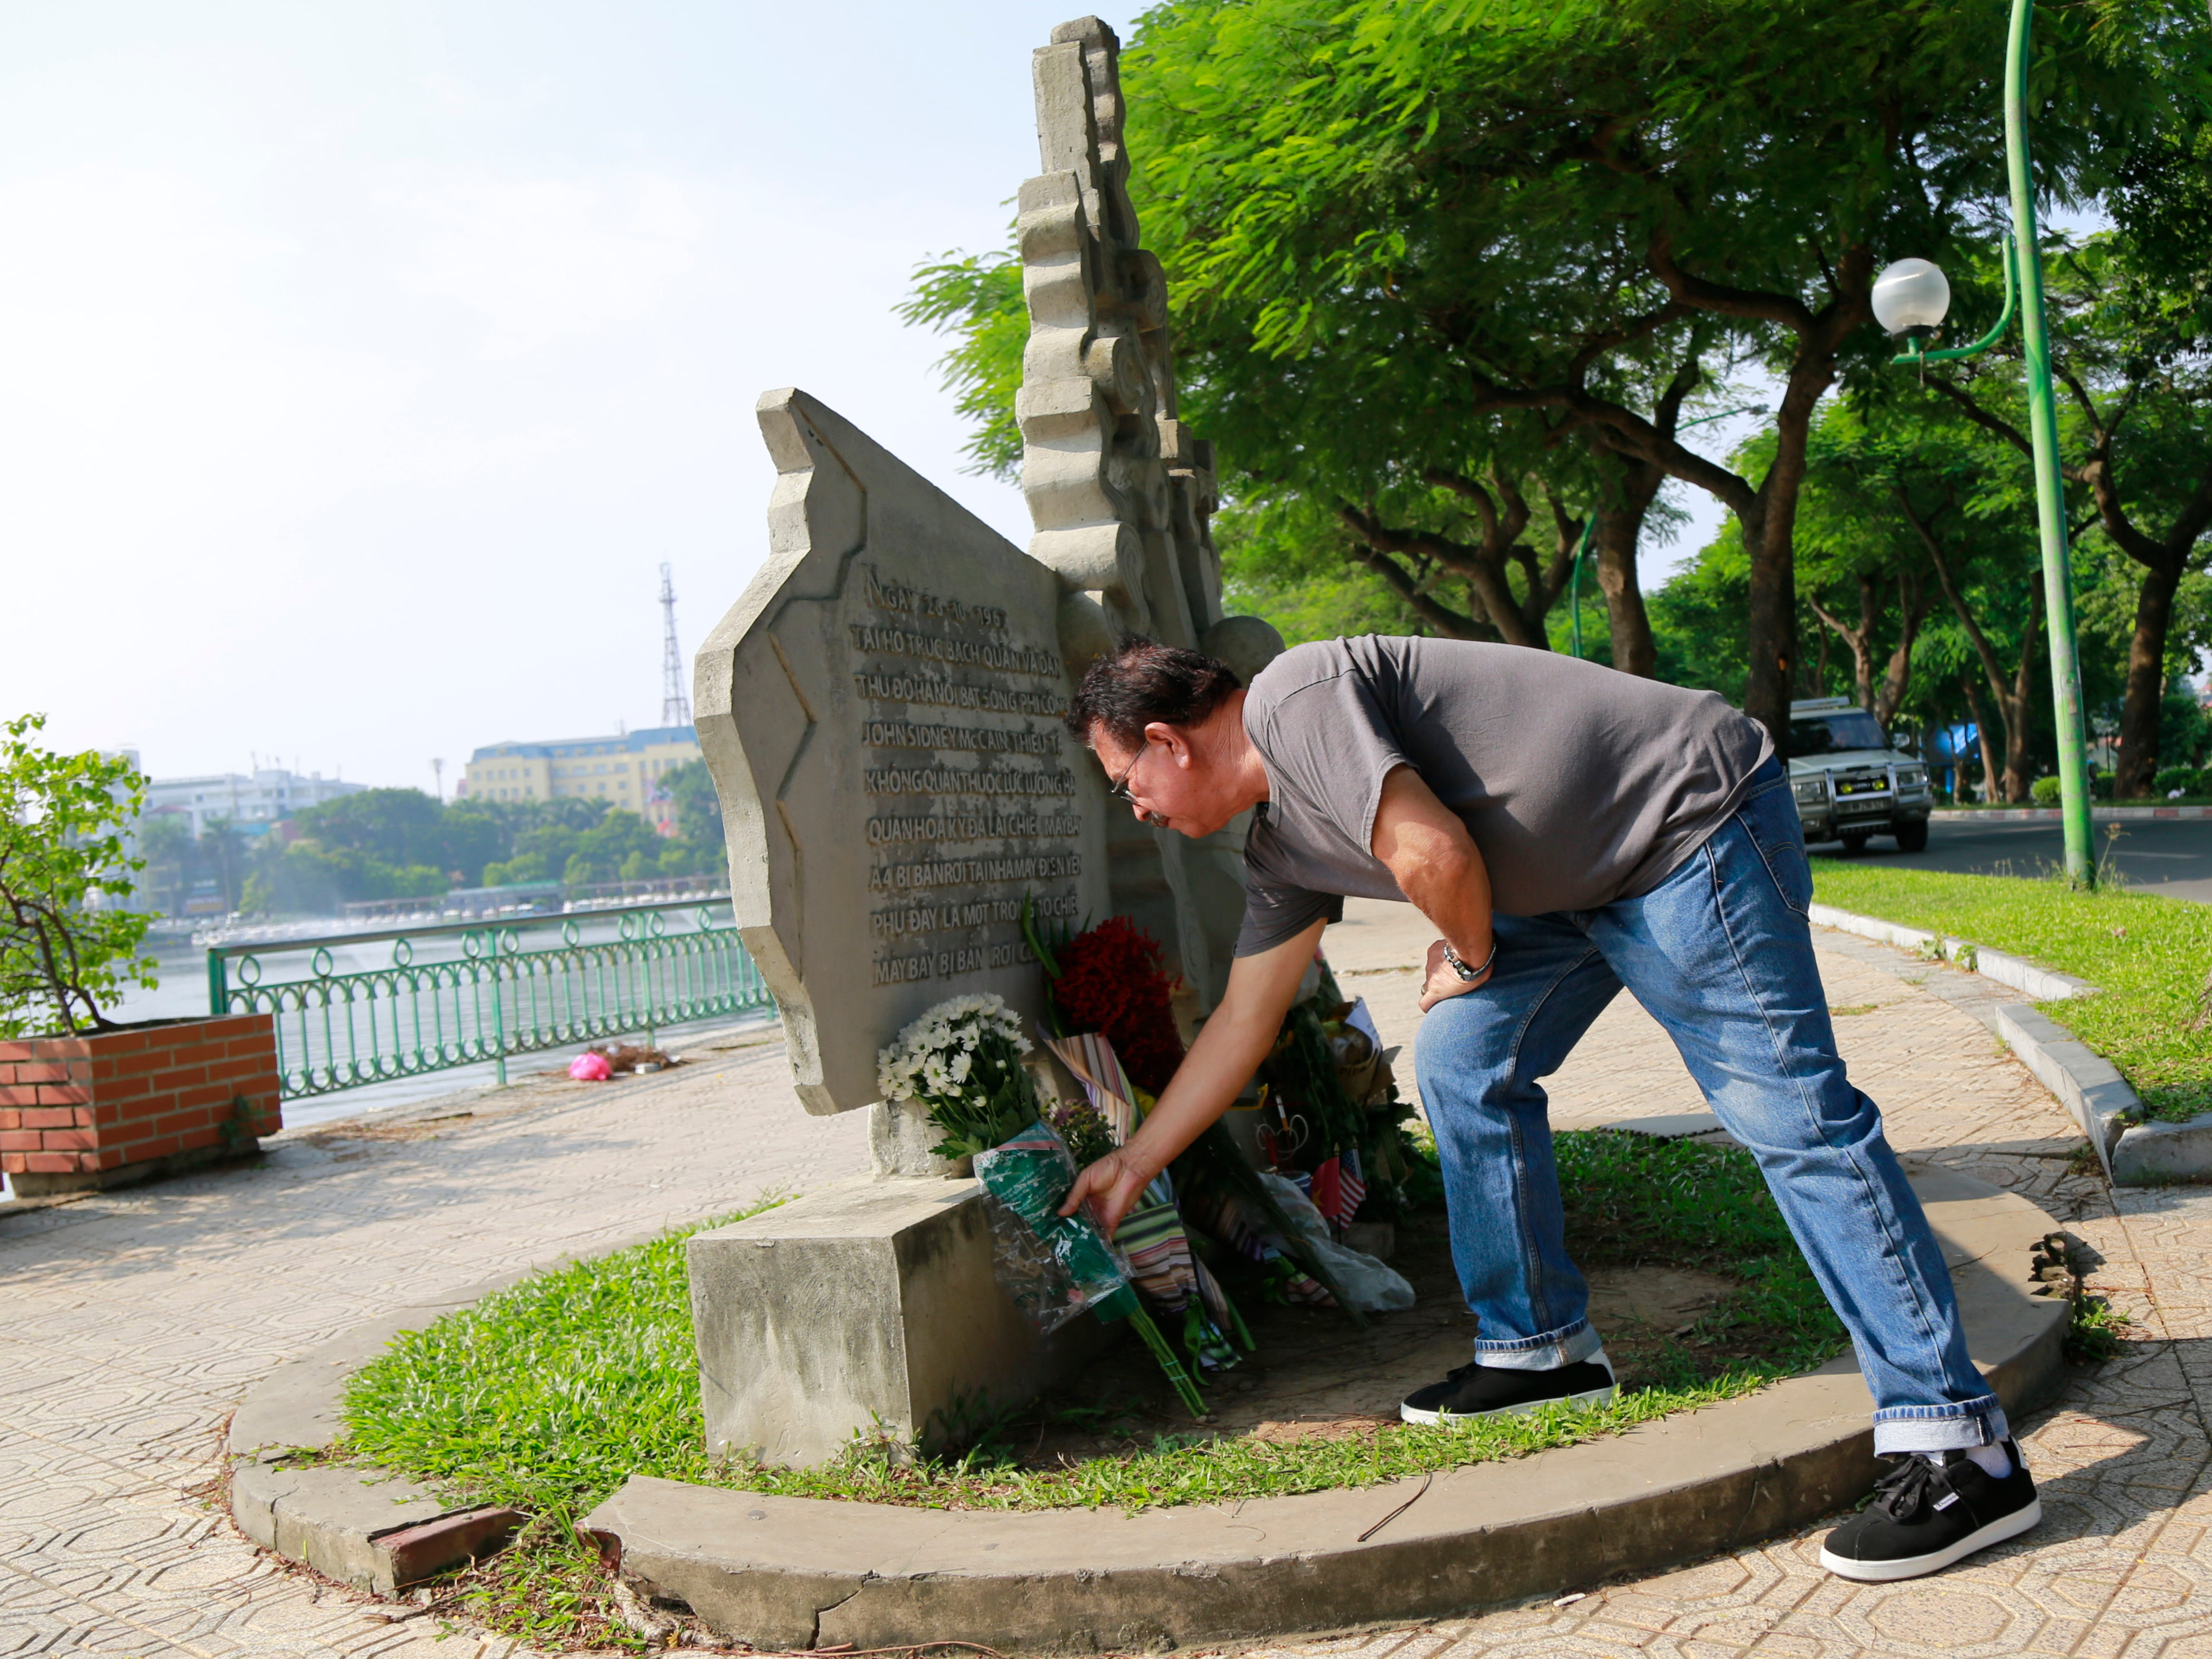 Victor Ramos, a Mexican man who has been living California for the past 35 years, lays flowers at the monument of U.S. Senator John McCain in Hanoi, Vietnam, Aug. 27, 2018. The monument was erected by the Vietnamese authorities to mark the day when then-U.S. Navy pilot McCain was shot down in 1967.